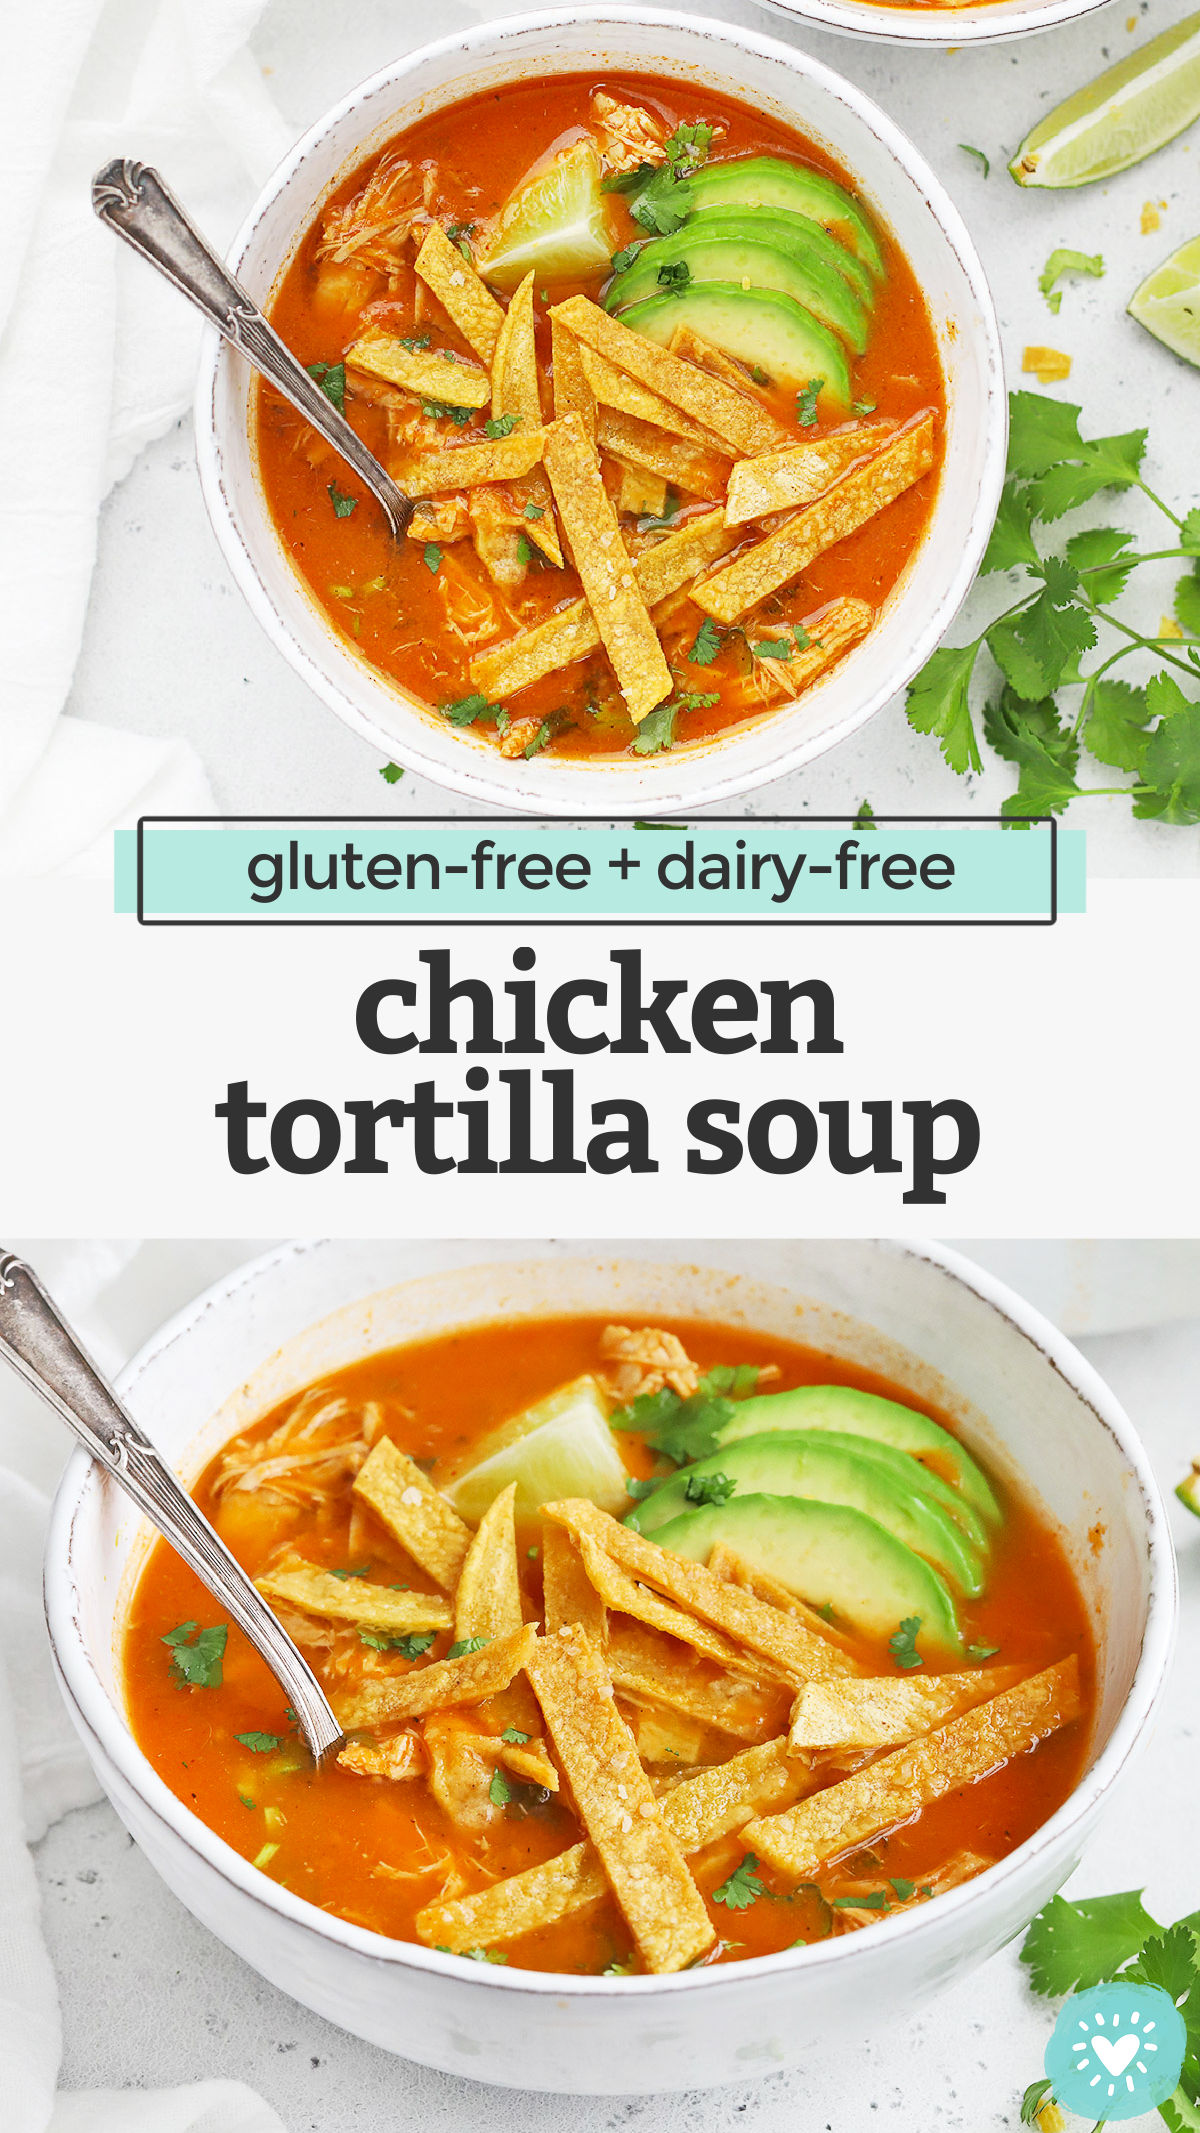 Chicken Tortilla Soup - Tender chicken in a savory, flavorful broth, topped with crispy baked tortilla strips and allll the goodies! (Gluten-Free + Paleo-Friendly) // Chicken Tortilla Soup Recipe // Tortilla Soup // Healthy Soup // #tortillasoup #chickensoup #glutenfree